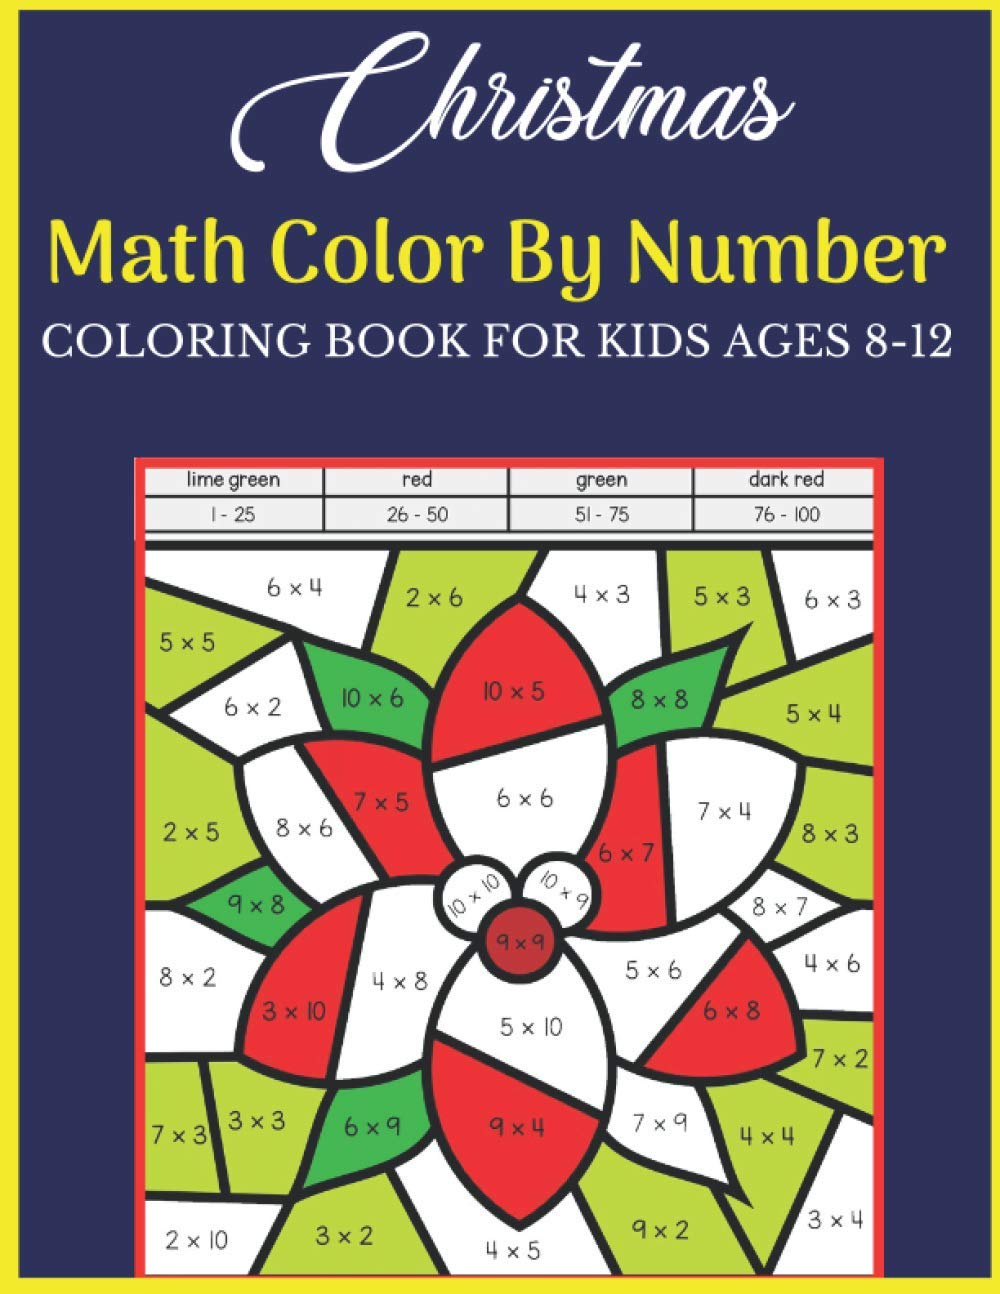 Christmas Math Color By Number Coloring Book For Kids Ages 8 12 Christmas Math Color By Number Amazing Holiday Coloring Activity Book For Children Sheets Inside Best Gift For Kids Ages